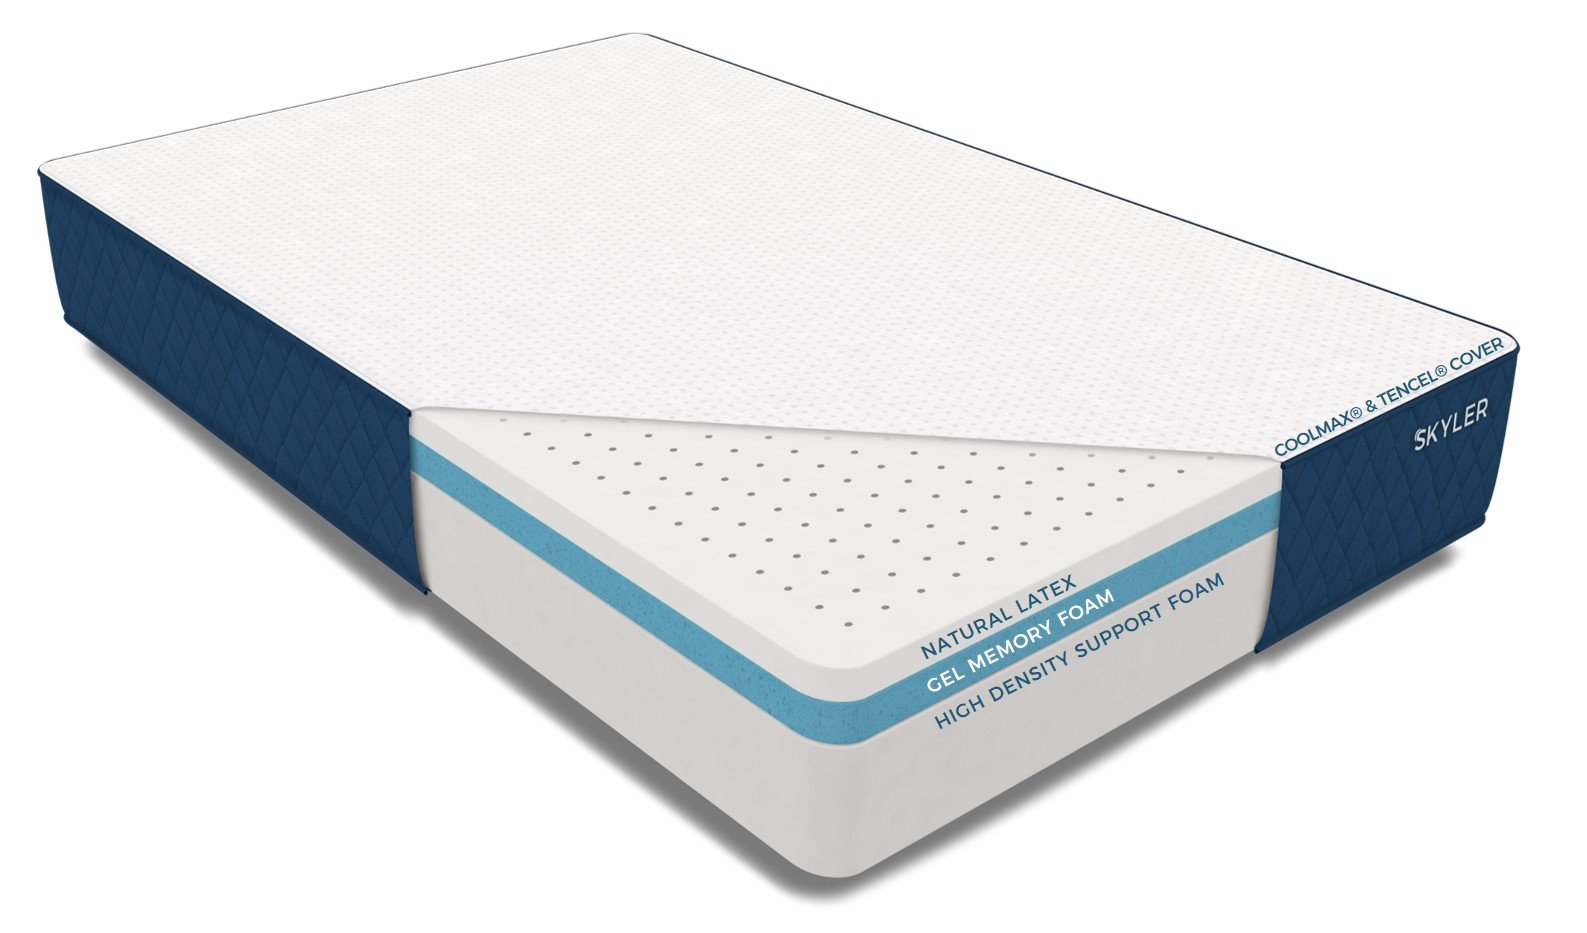 Skyler Mattress Diagram showing natural latex, gel memory foam, and support foam layers